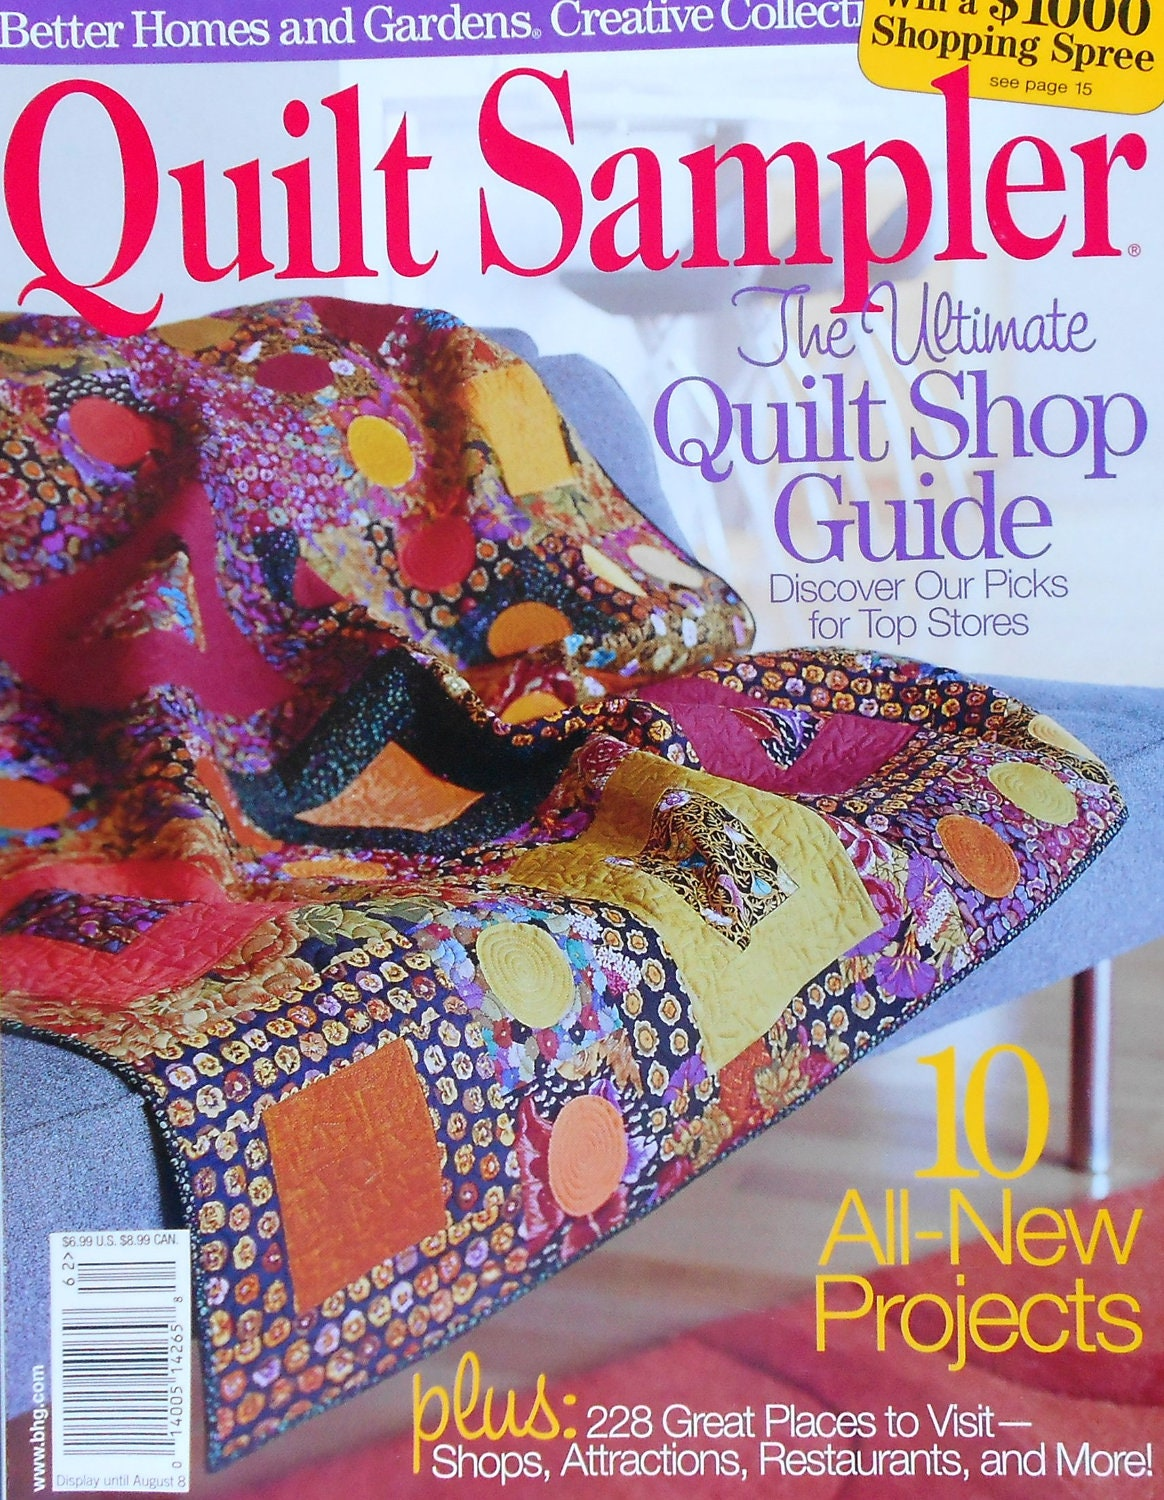 Better Homes And Gardens Quilting Magazine Quilt Sampler